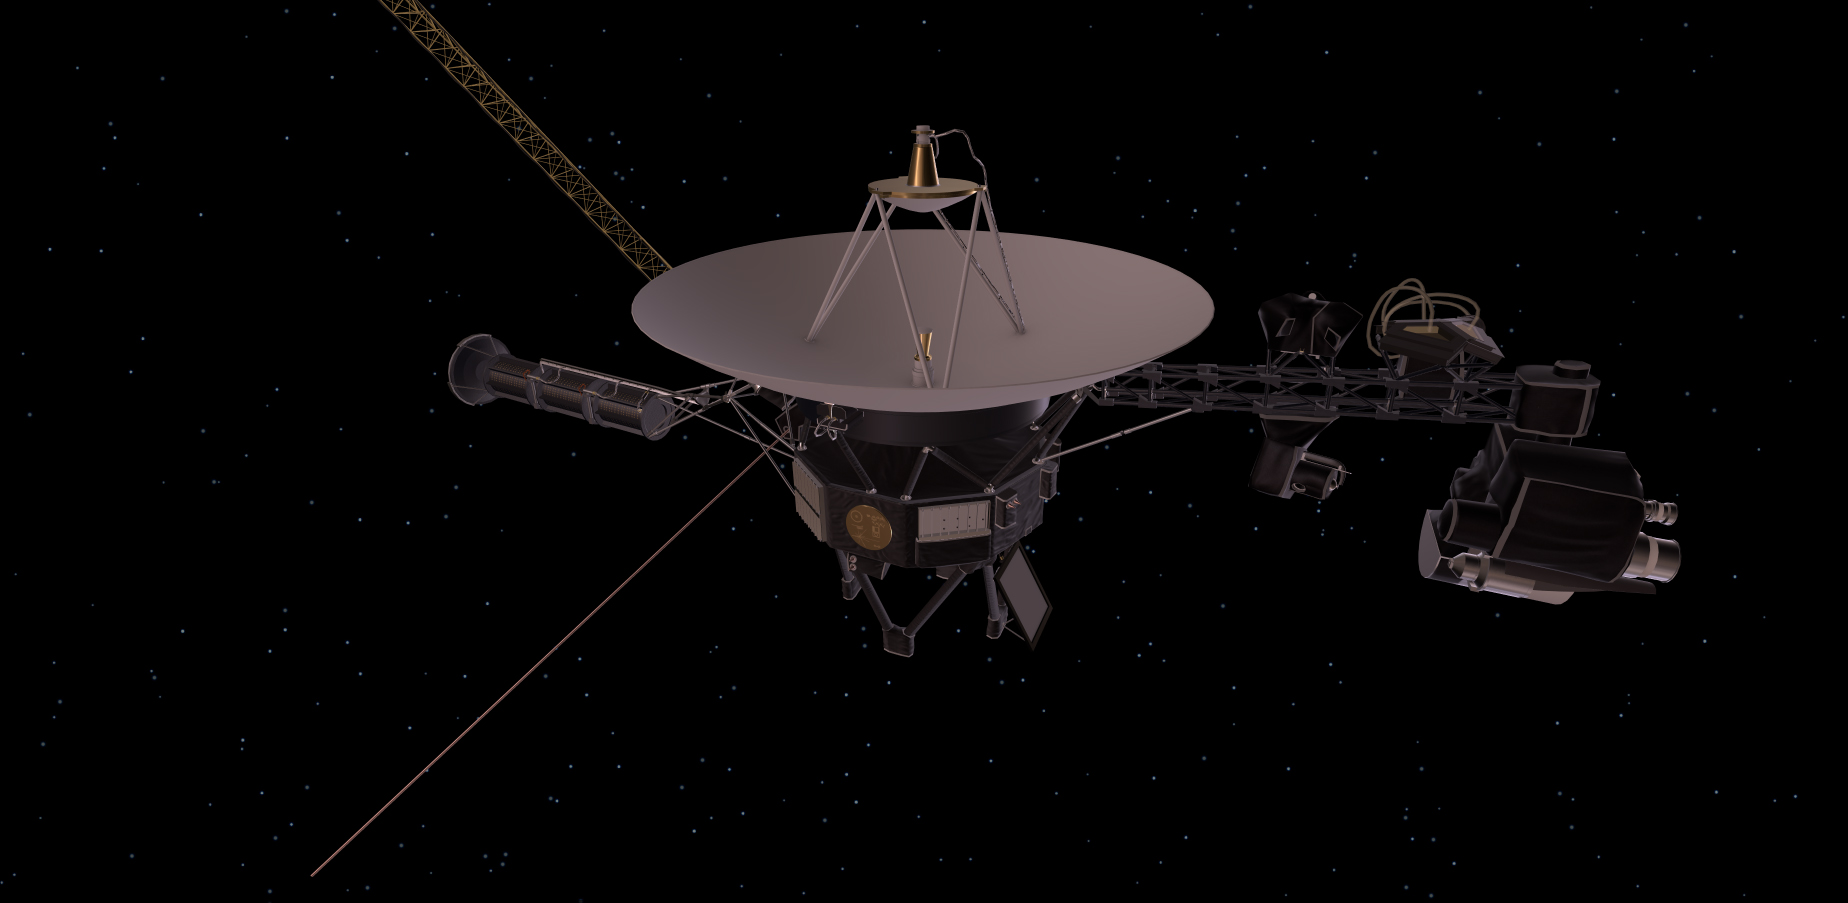 NASA reallocates resources to extend life of Voyager deep-space probes